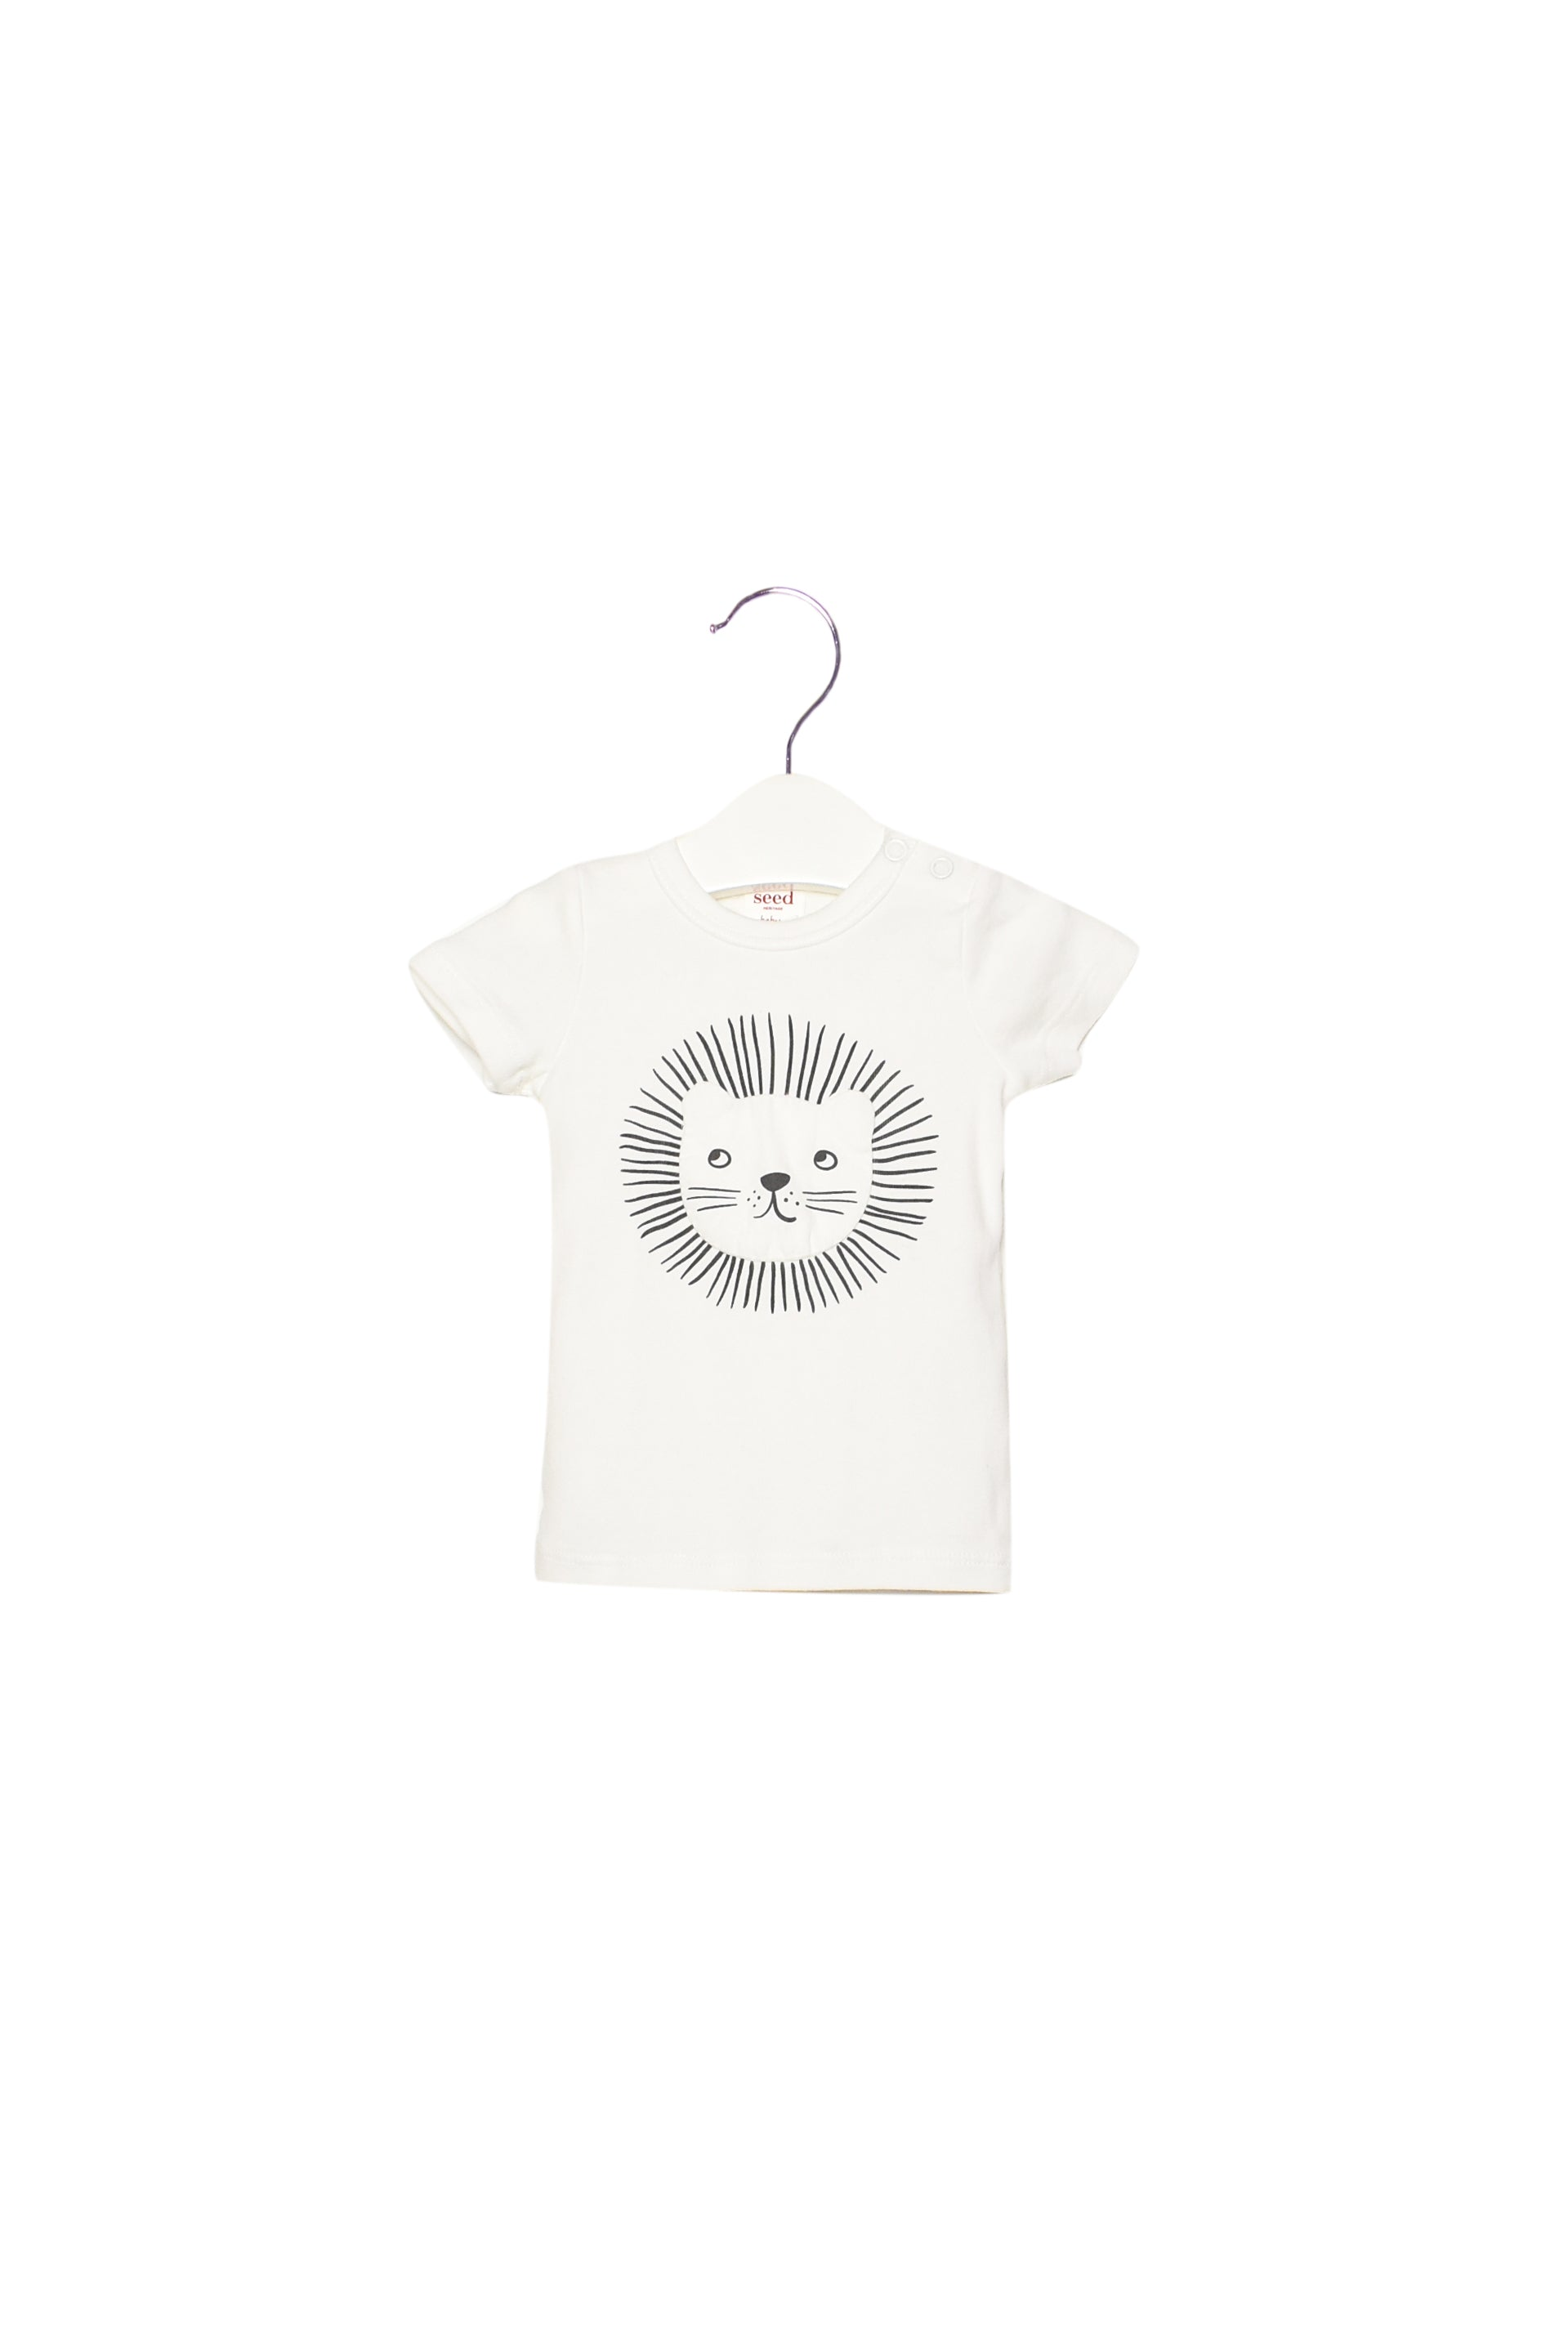 10011956 Seed Baby ~ T-Shirt 0-3M at Retykle